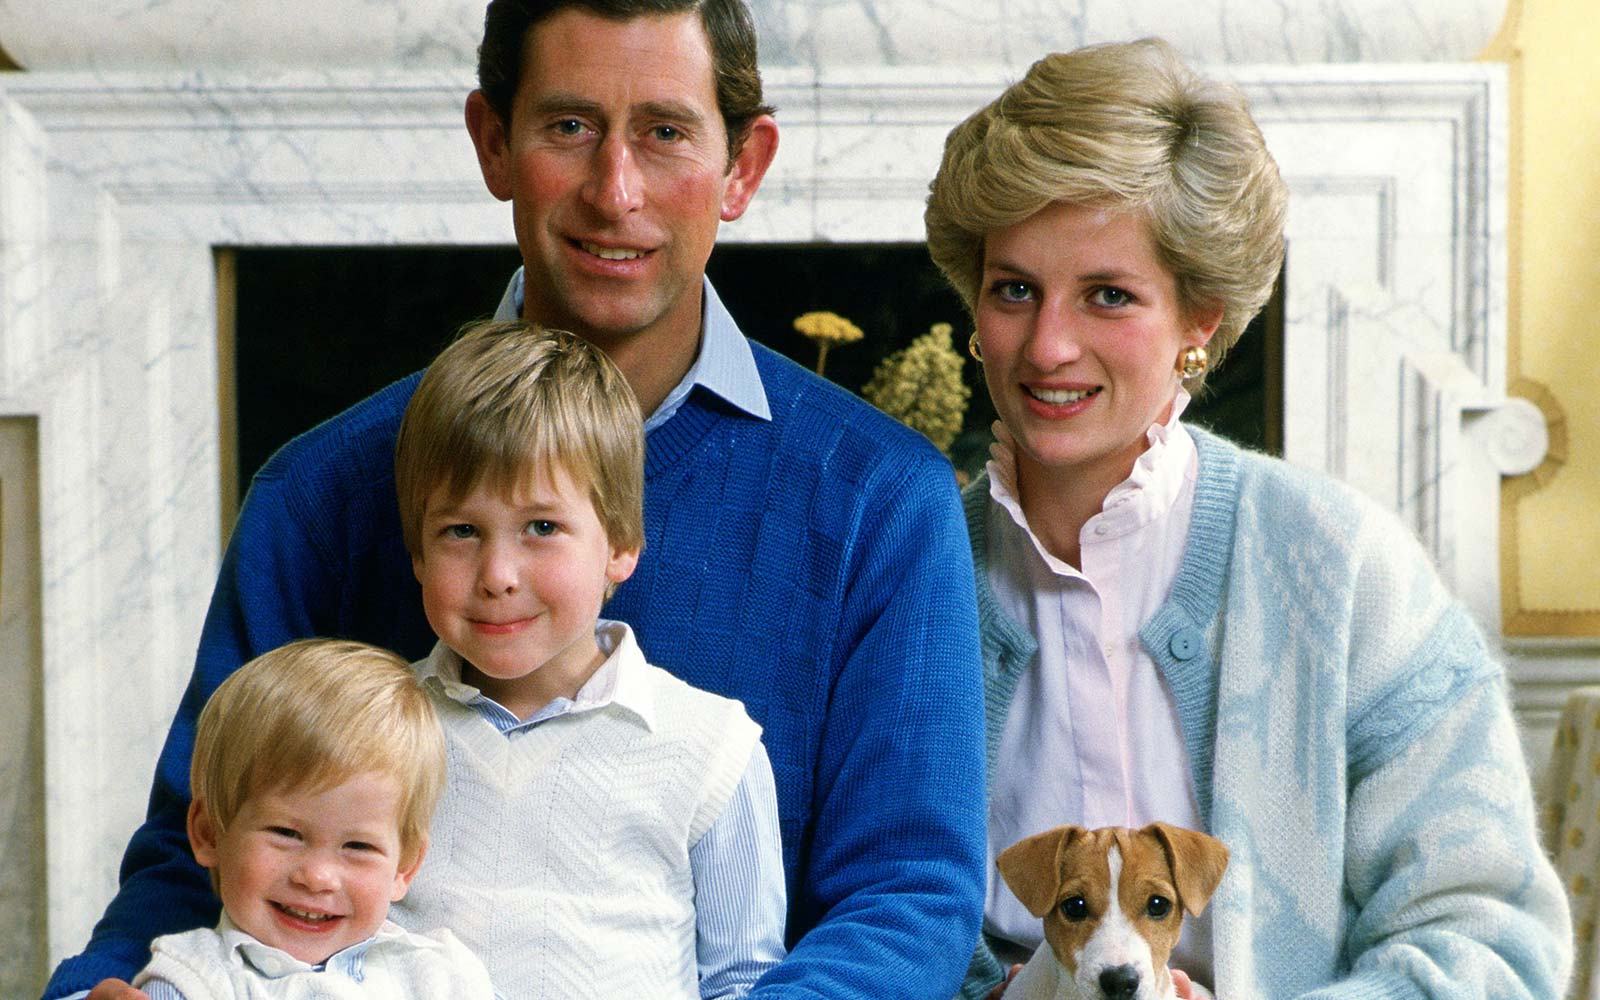 7 Surprising Facts About the Royal Family's Eating Habits